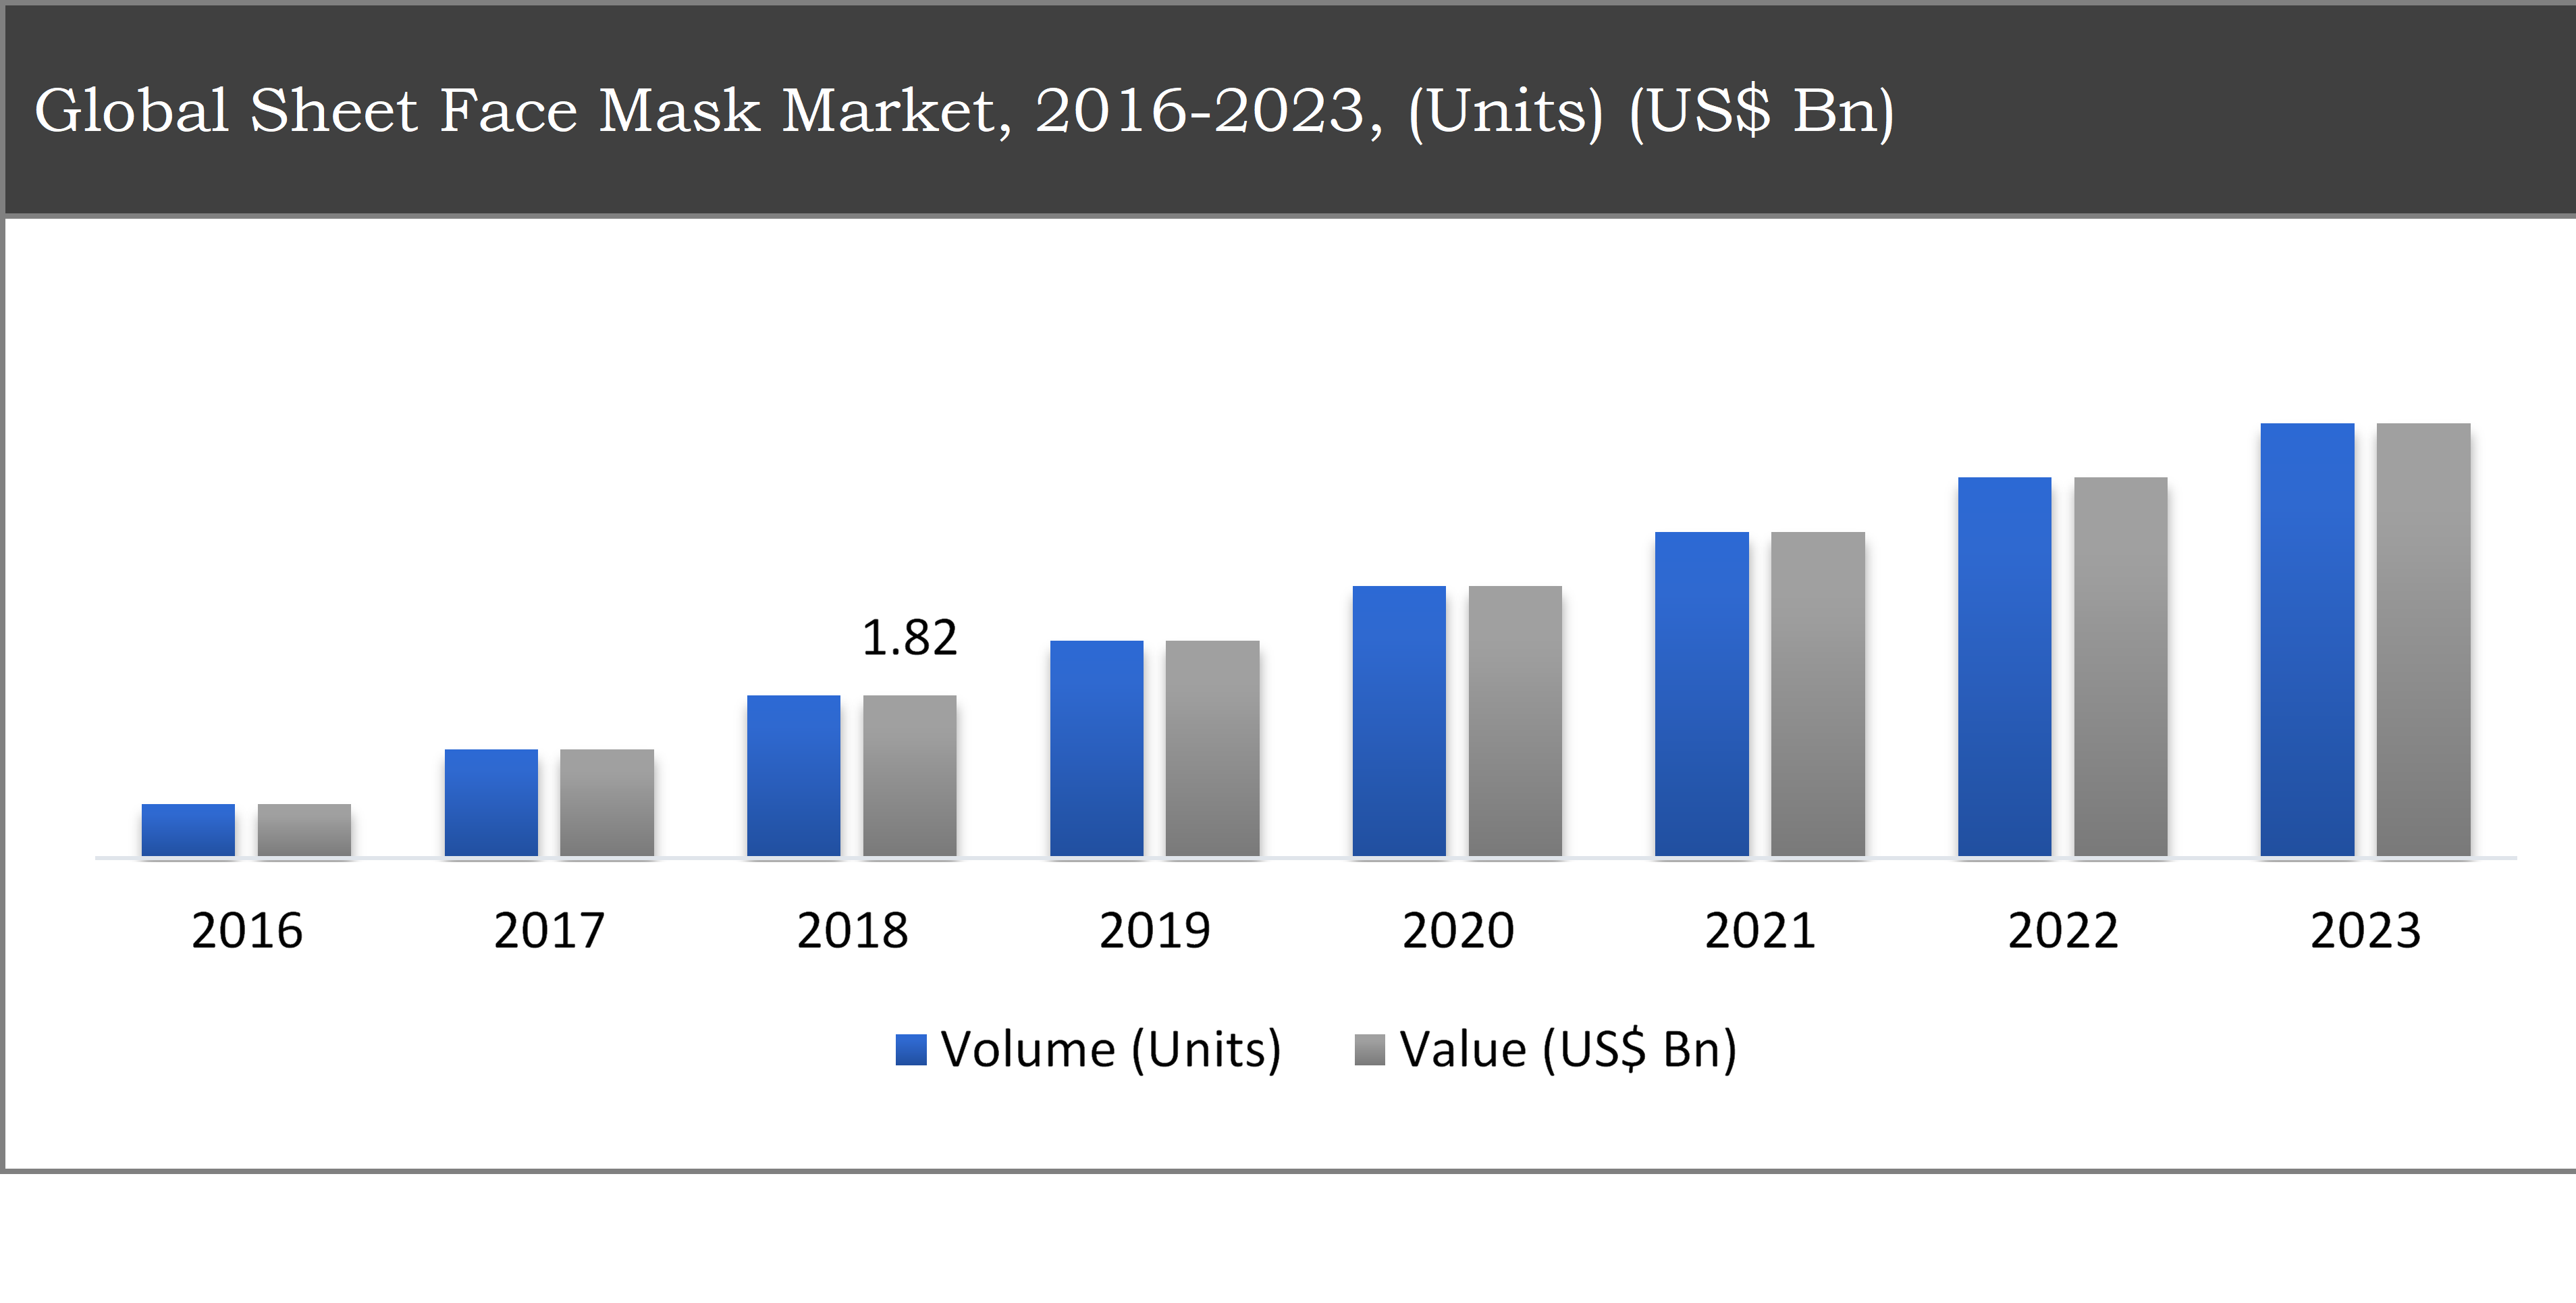 2016 Market - Mask Sheet Face Global Alltheresearch To 2026